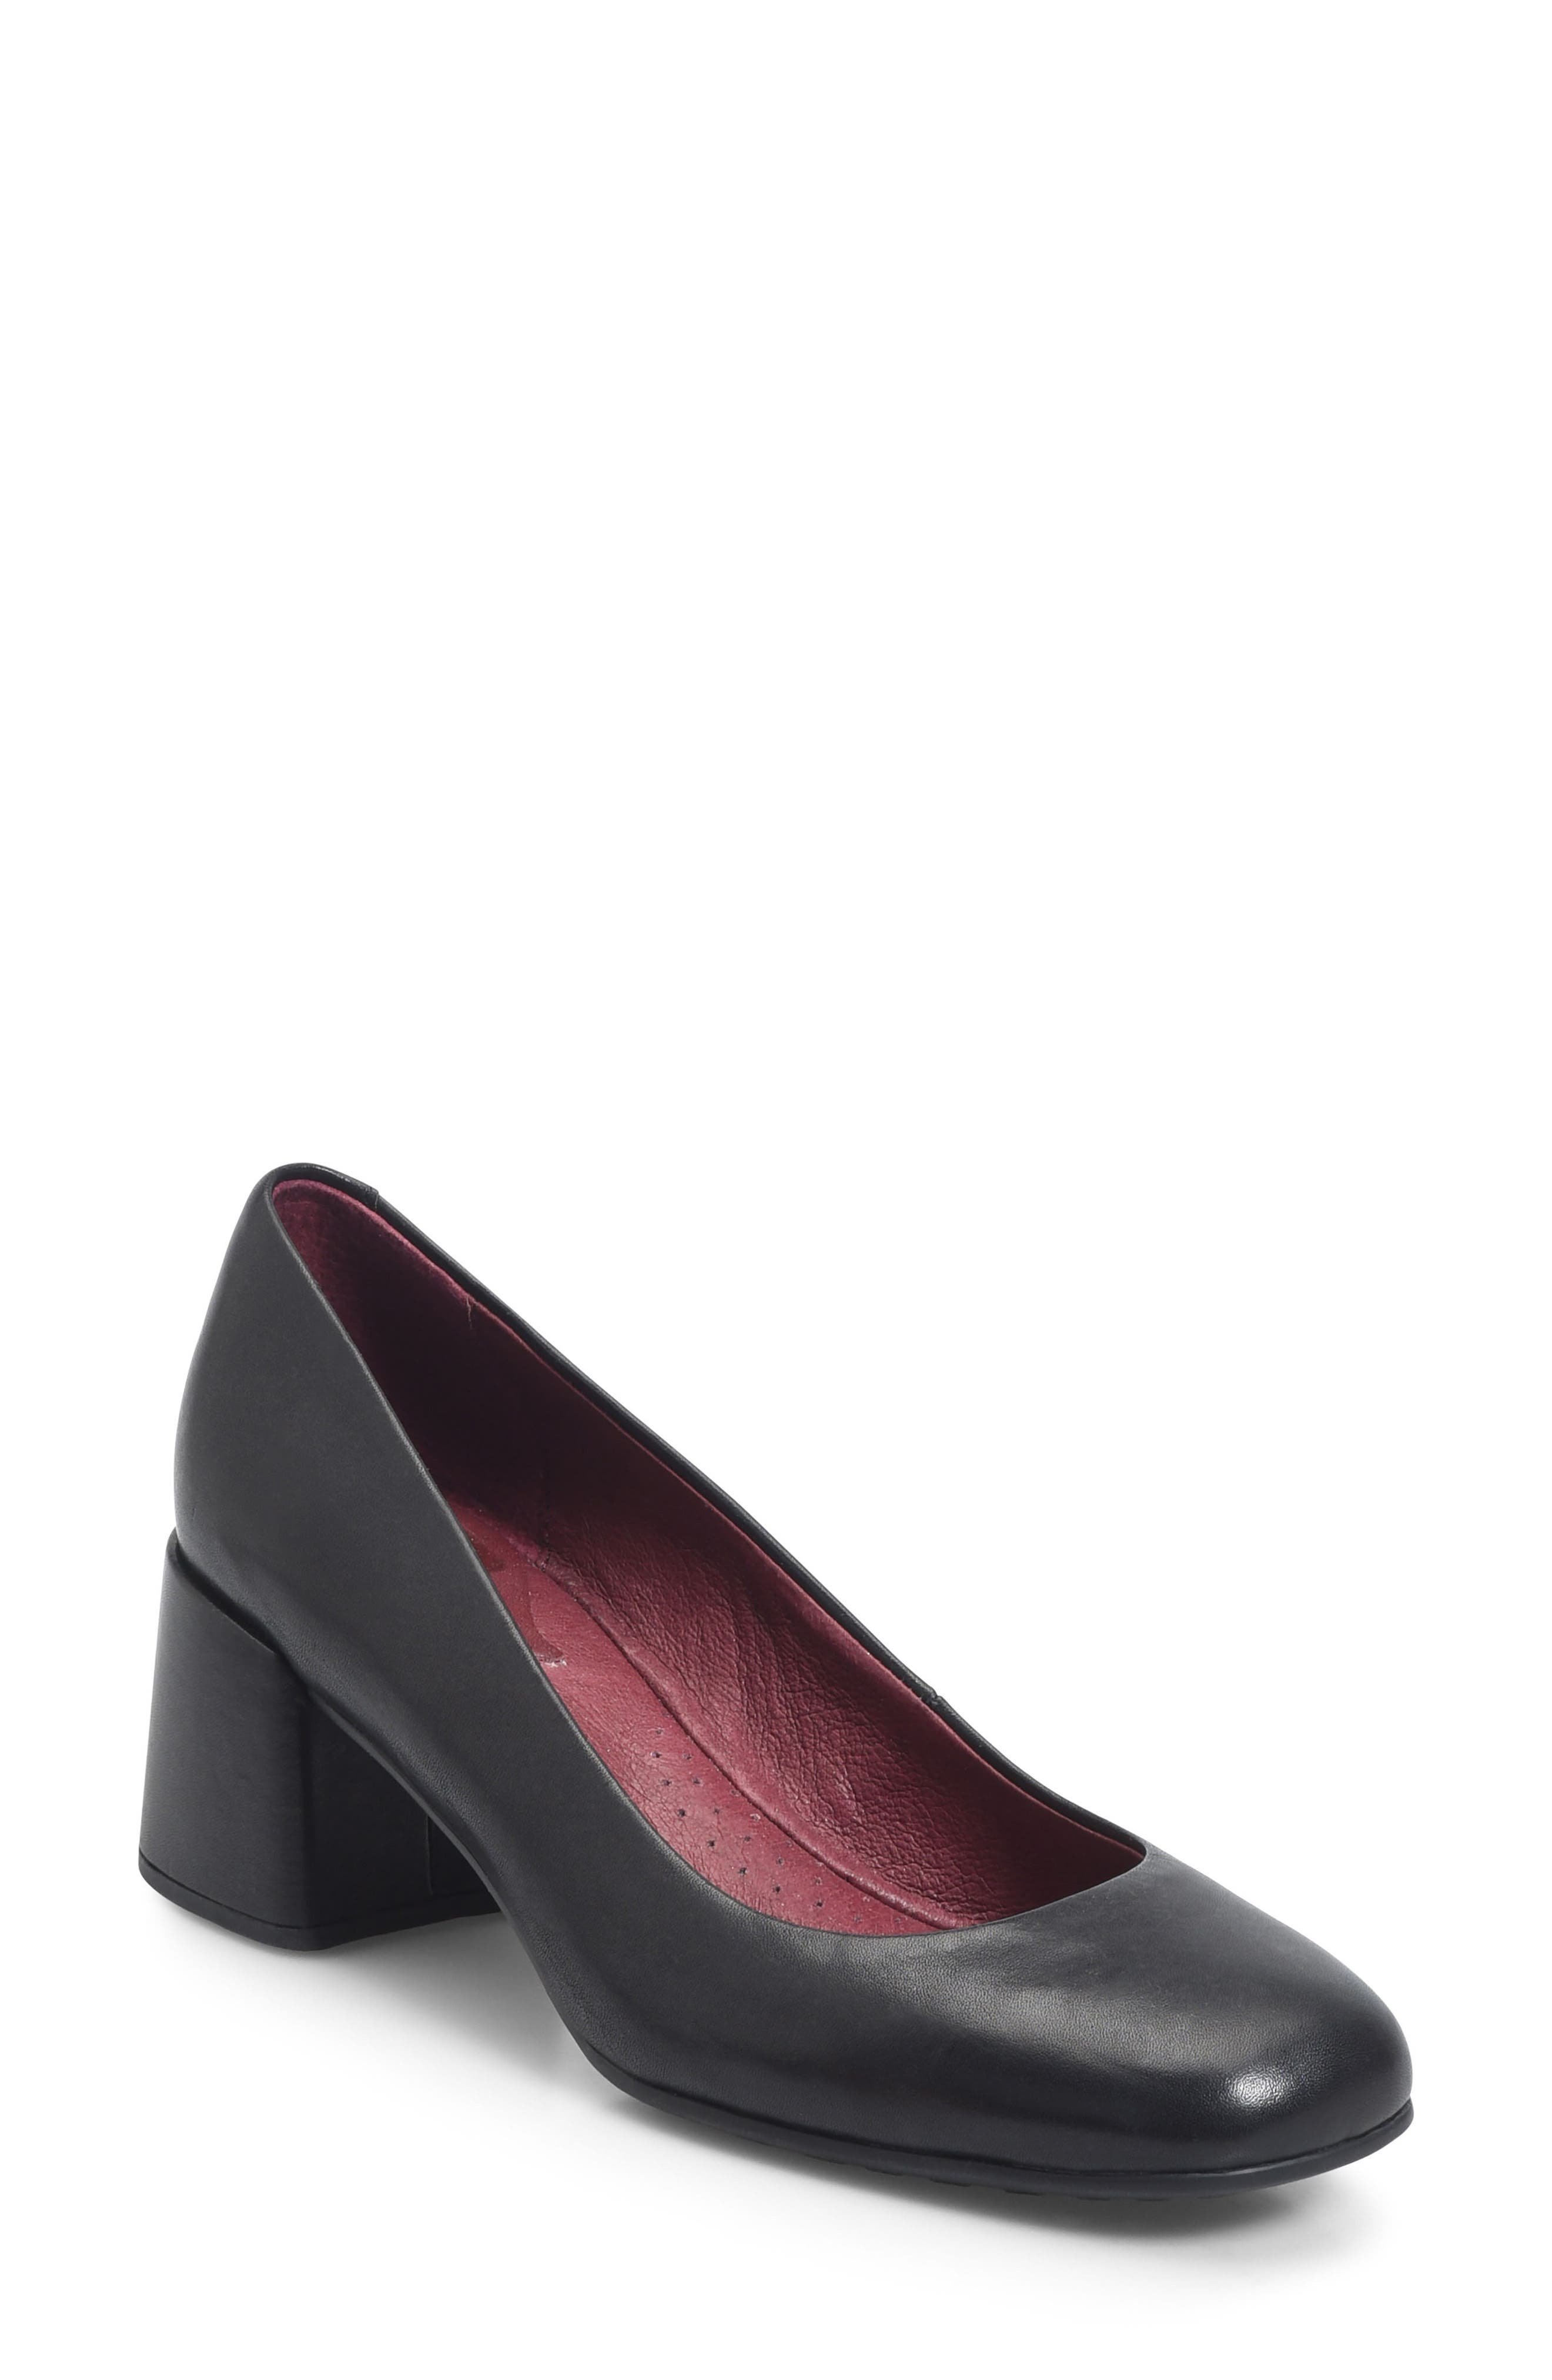 Magnolia Block Heel Pump,                             Main thumbnail 1, color,                             BLACK LEATHER